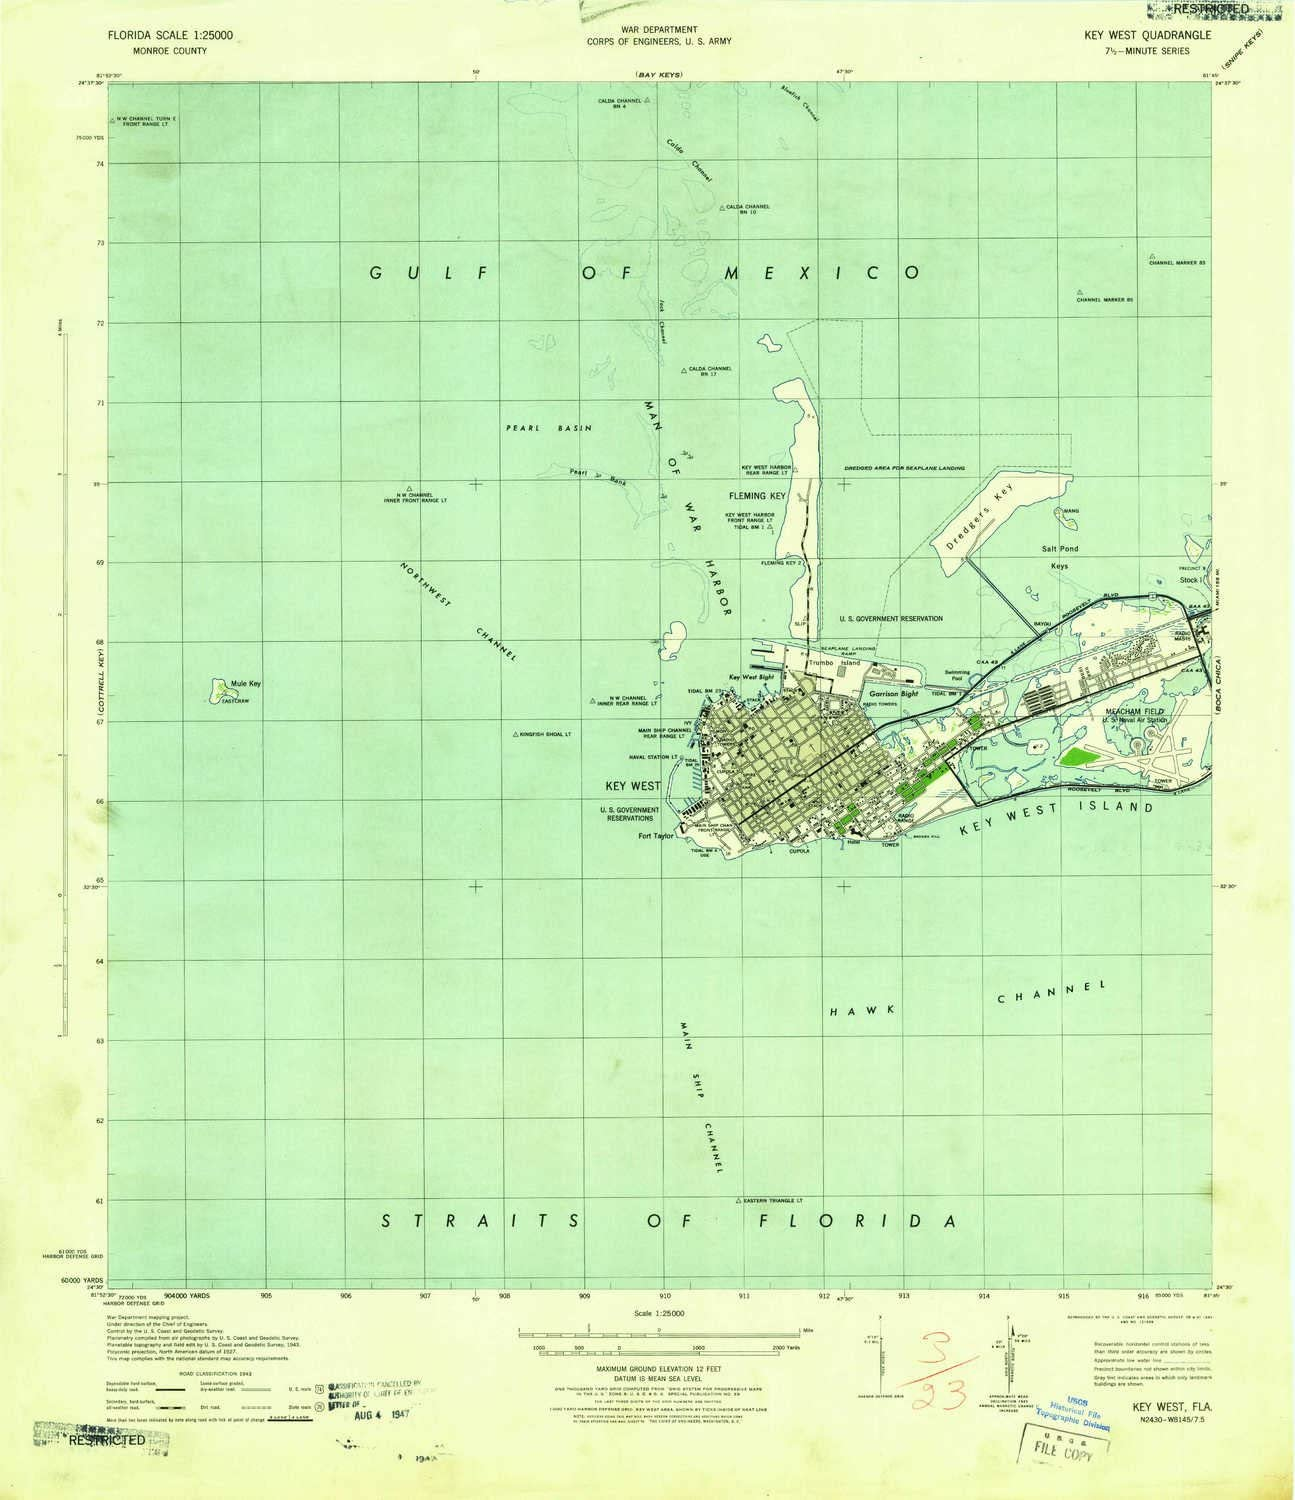 1:31680 Scale YellowMaps Central Square NY topo map Historical 1943 21.9 x 16.9 in 7.5 X 7.5 Minute